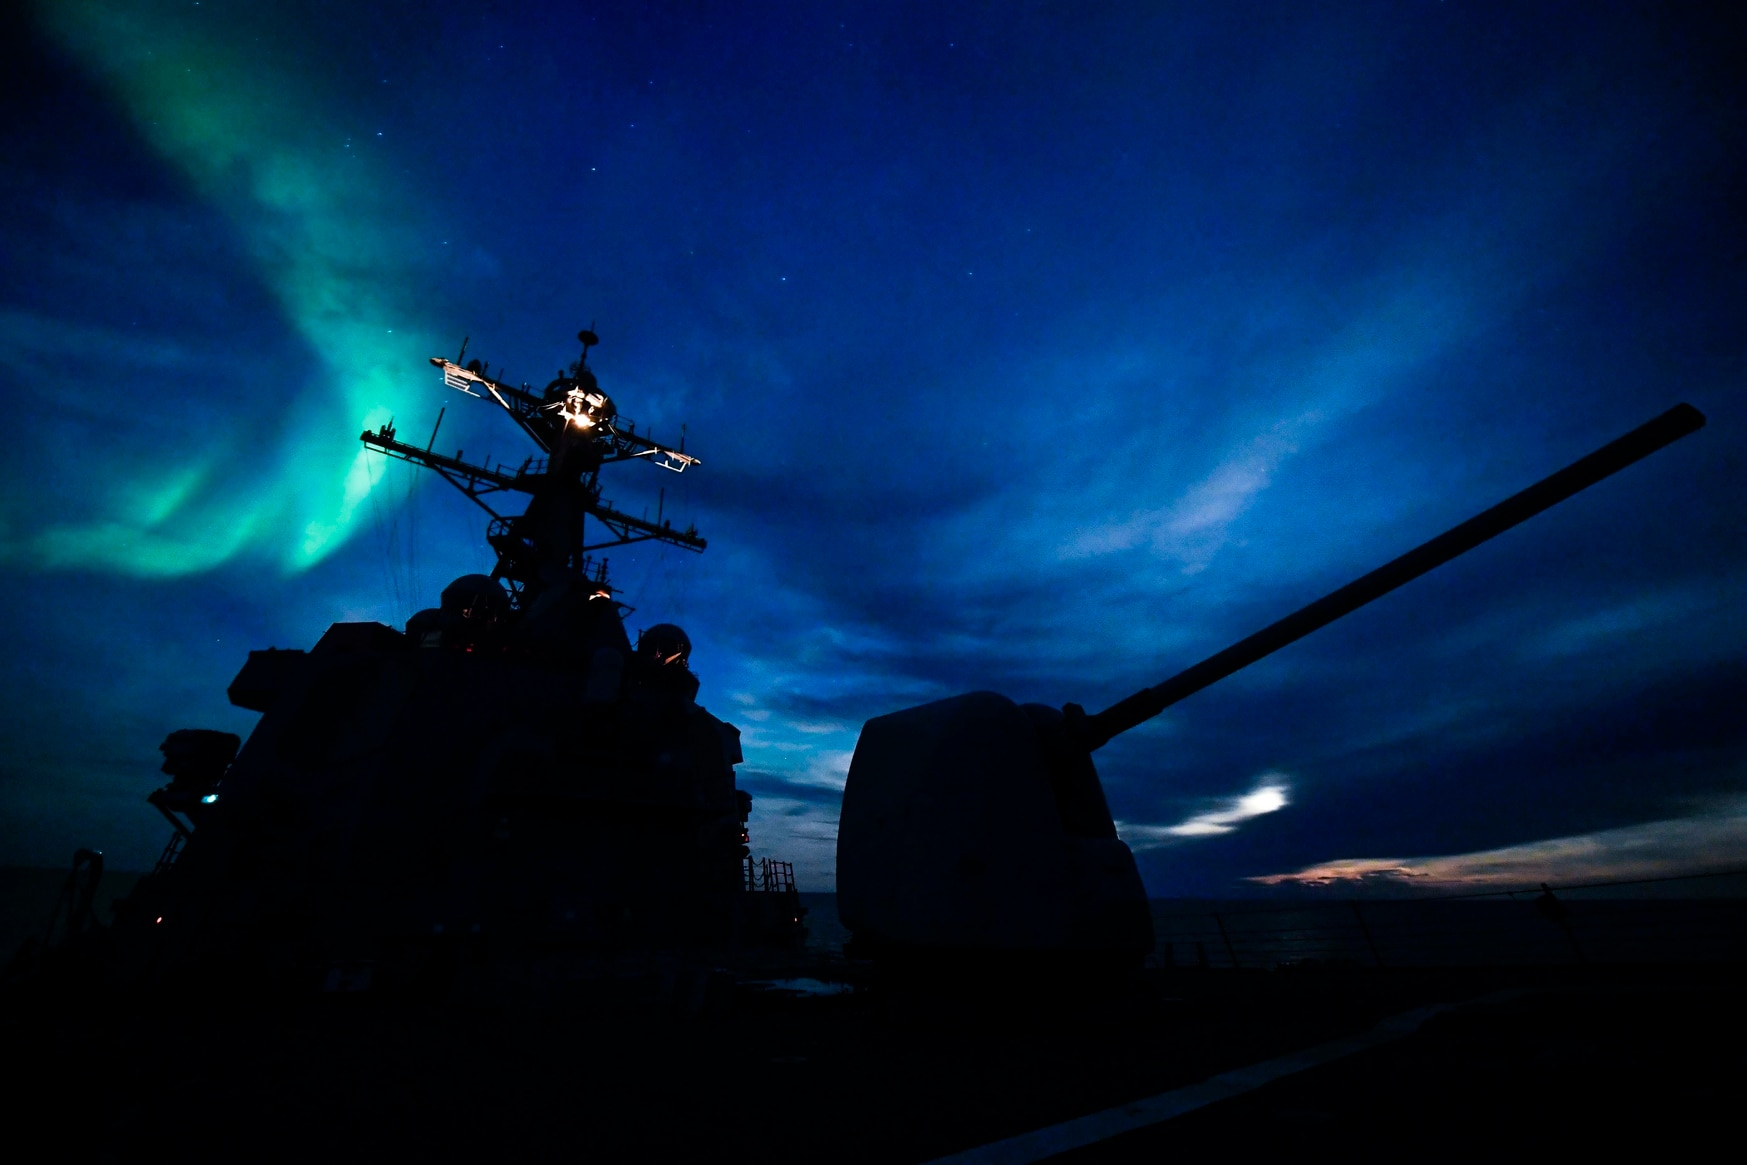 The Arleigh Burke-class guided-missile destroyer Oscar Austin transits the Arctic Circle on Sept. 5, 2017. The U.S. Navy ship was on a routine deployment supporting U.S. national security interests in Europe. (MC2 Ryan U. Kledzik/U.S. Navy)